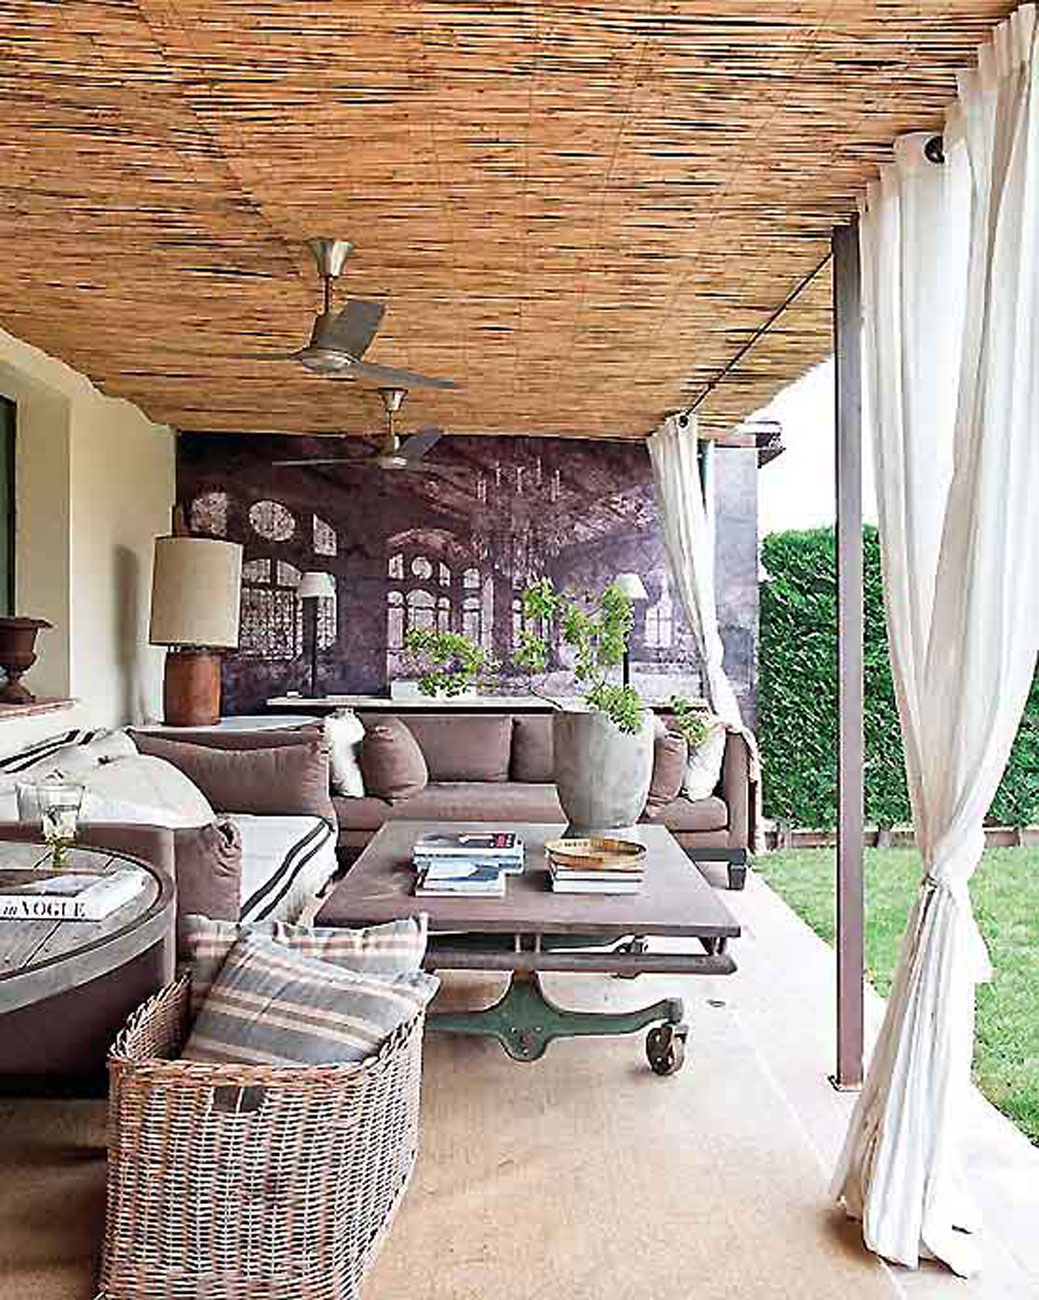 Rustic-Interior-Ideas-from-A-Farmhouse-in-Spain-Terrace